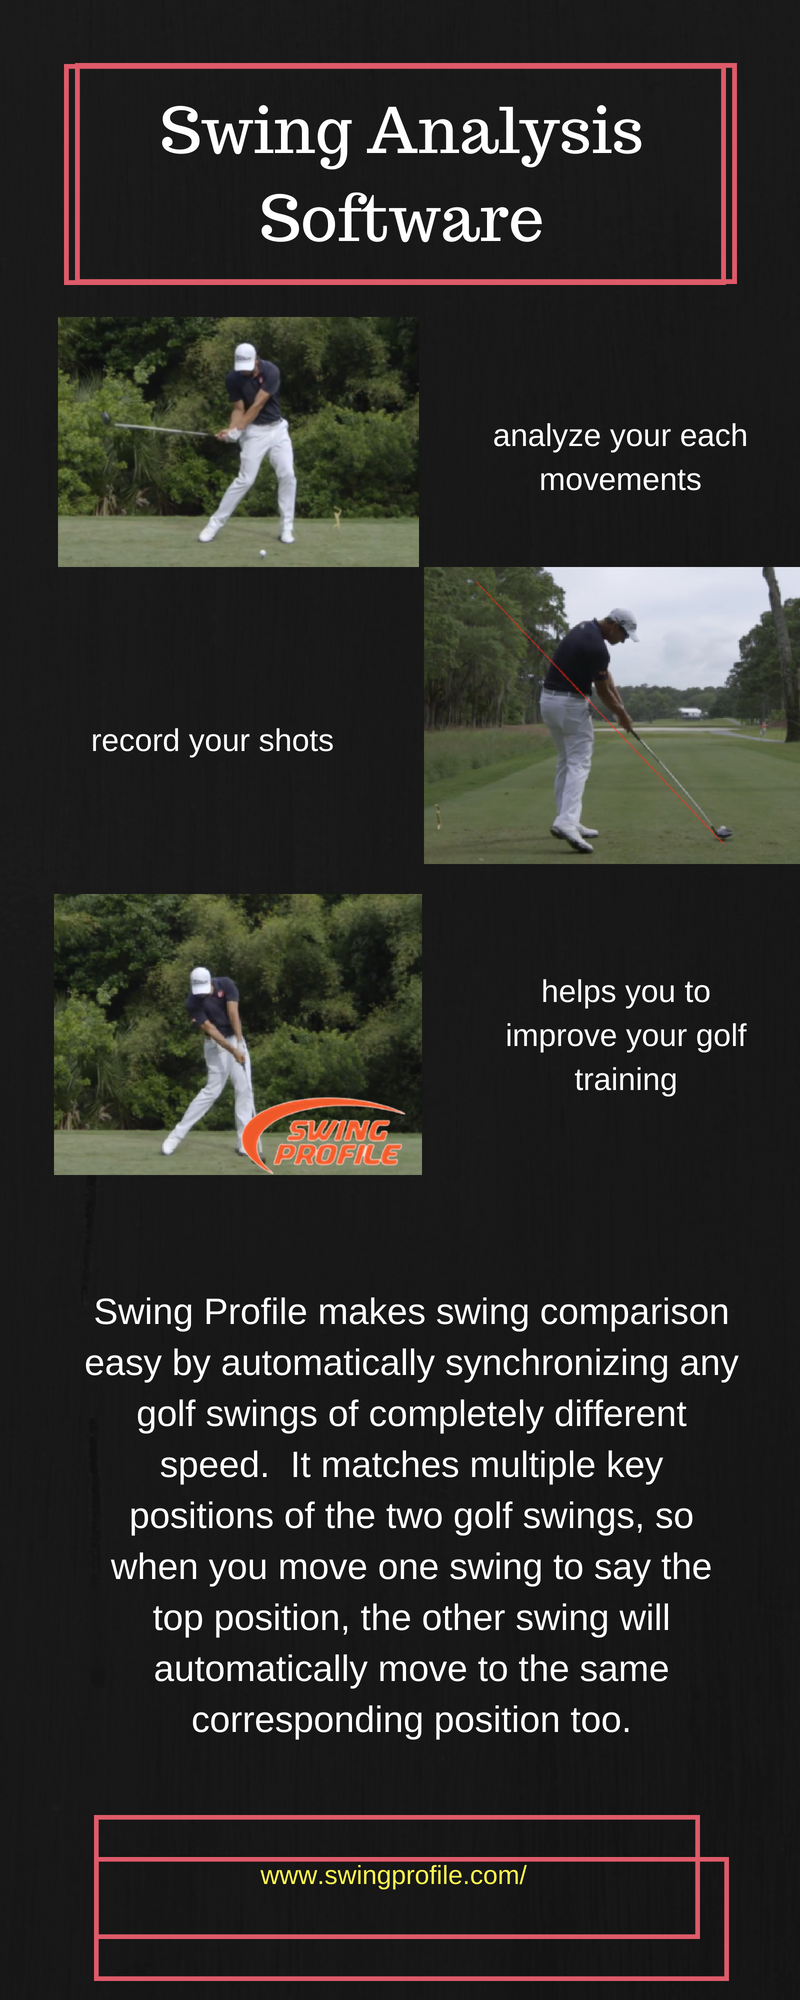 the swing analysis Swing profile is an amazing development in swing analysis software in a few easy steps you can record and view your swing in a number of key positions, helping you to see and understand the swing changes you are working on with your pga professional.